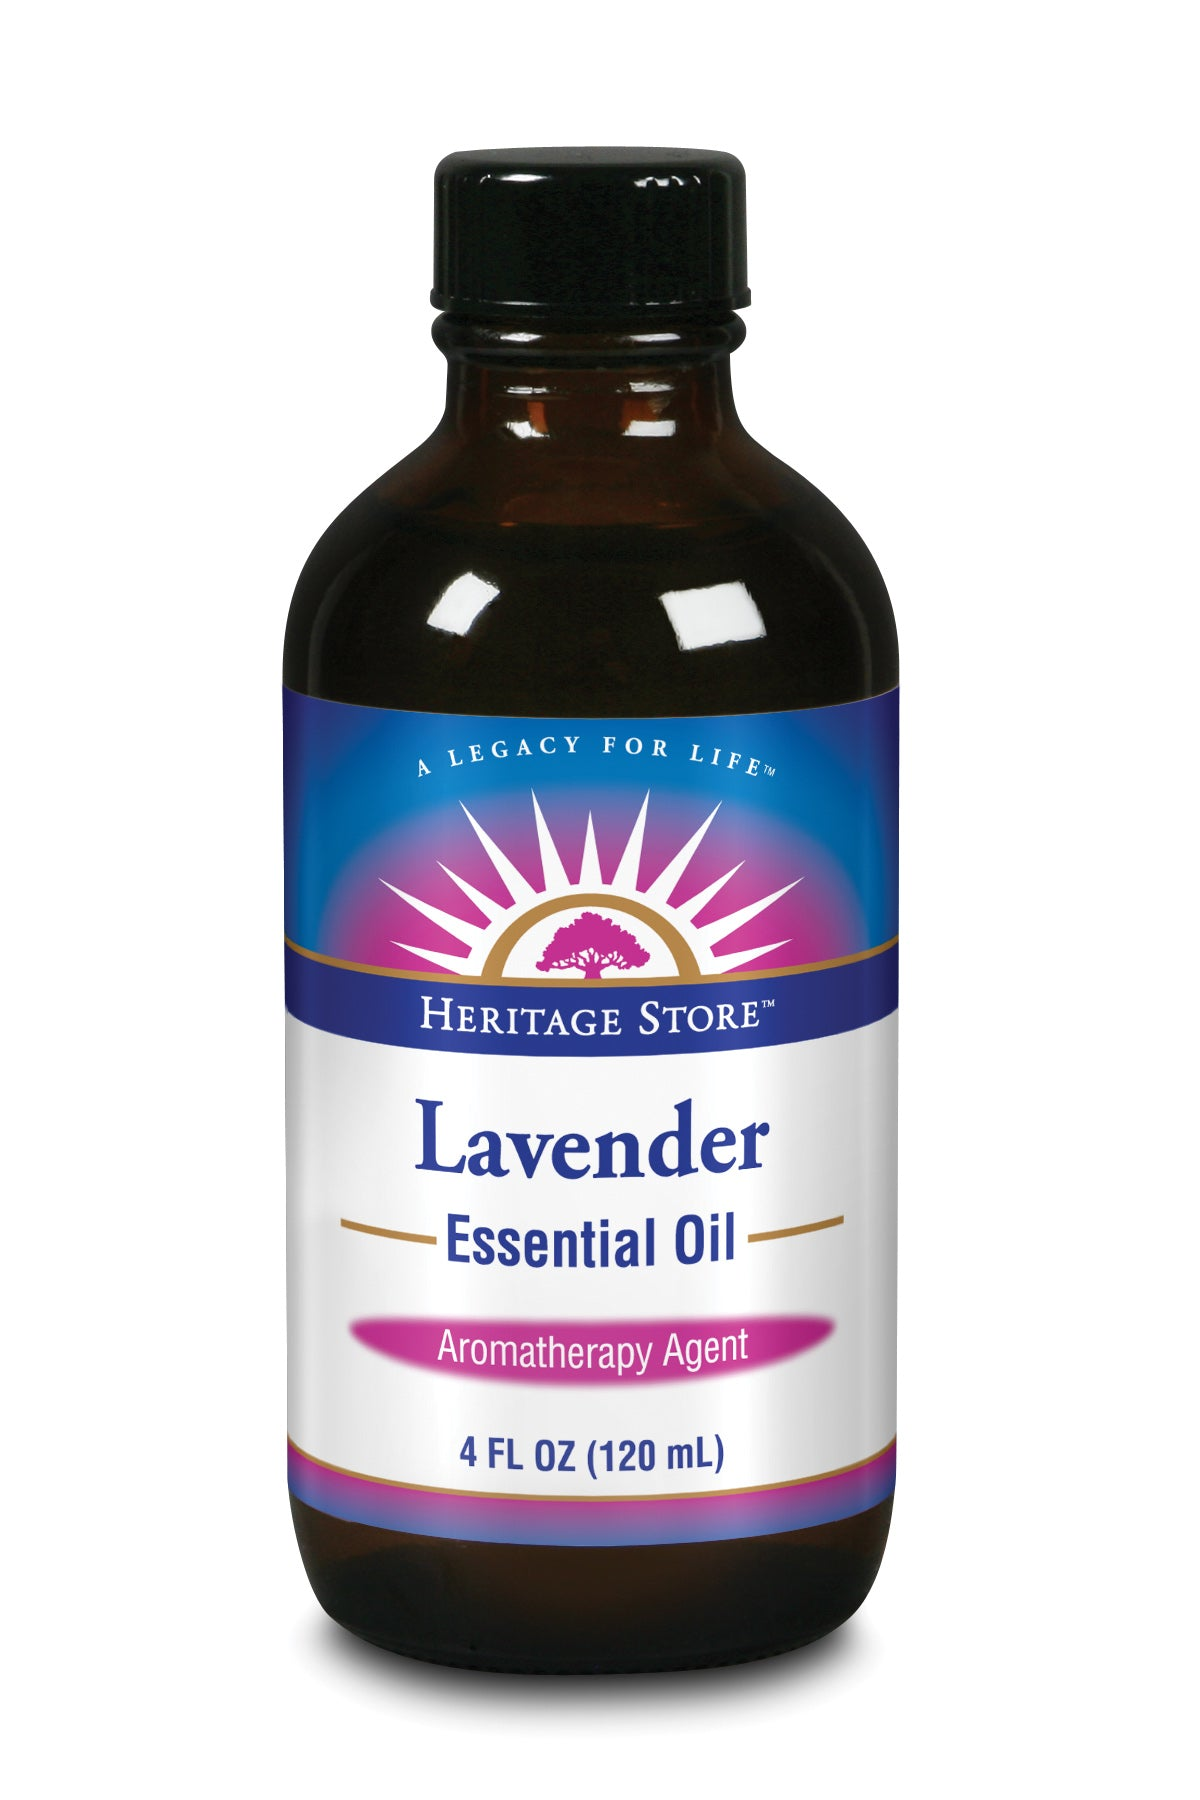 Lavender, Essential Oil - Aromatherapy